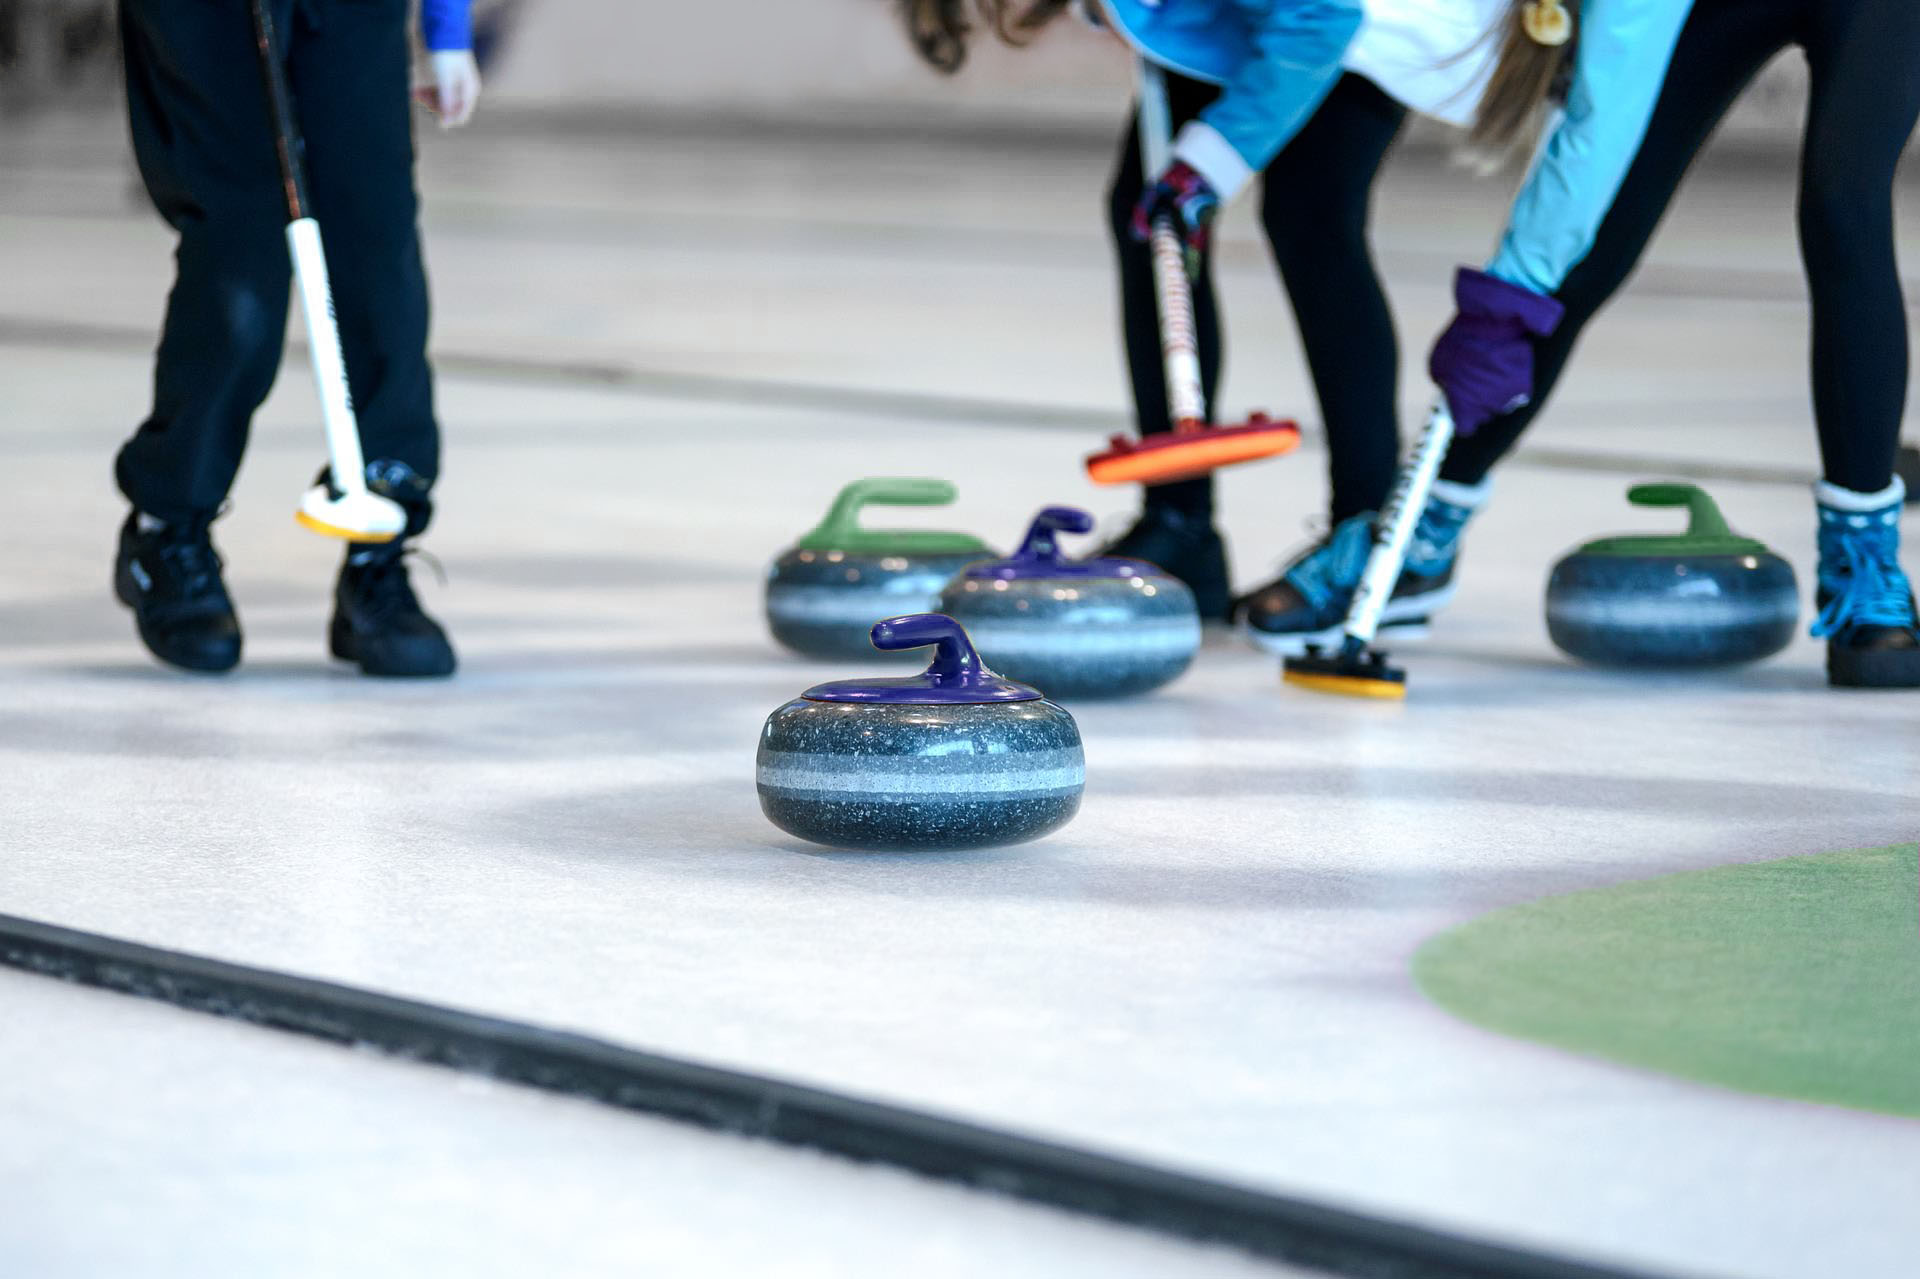 curling-competition-michigan_edit.jpg